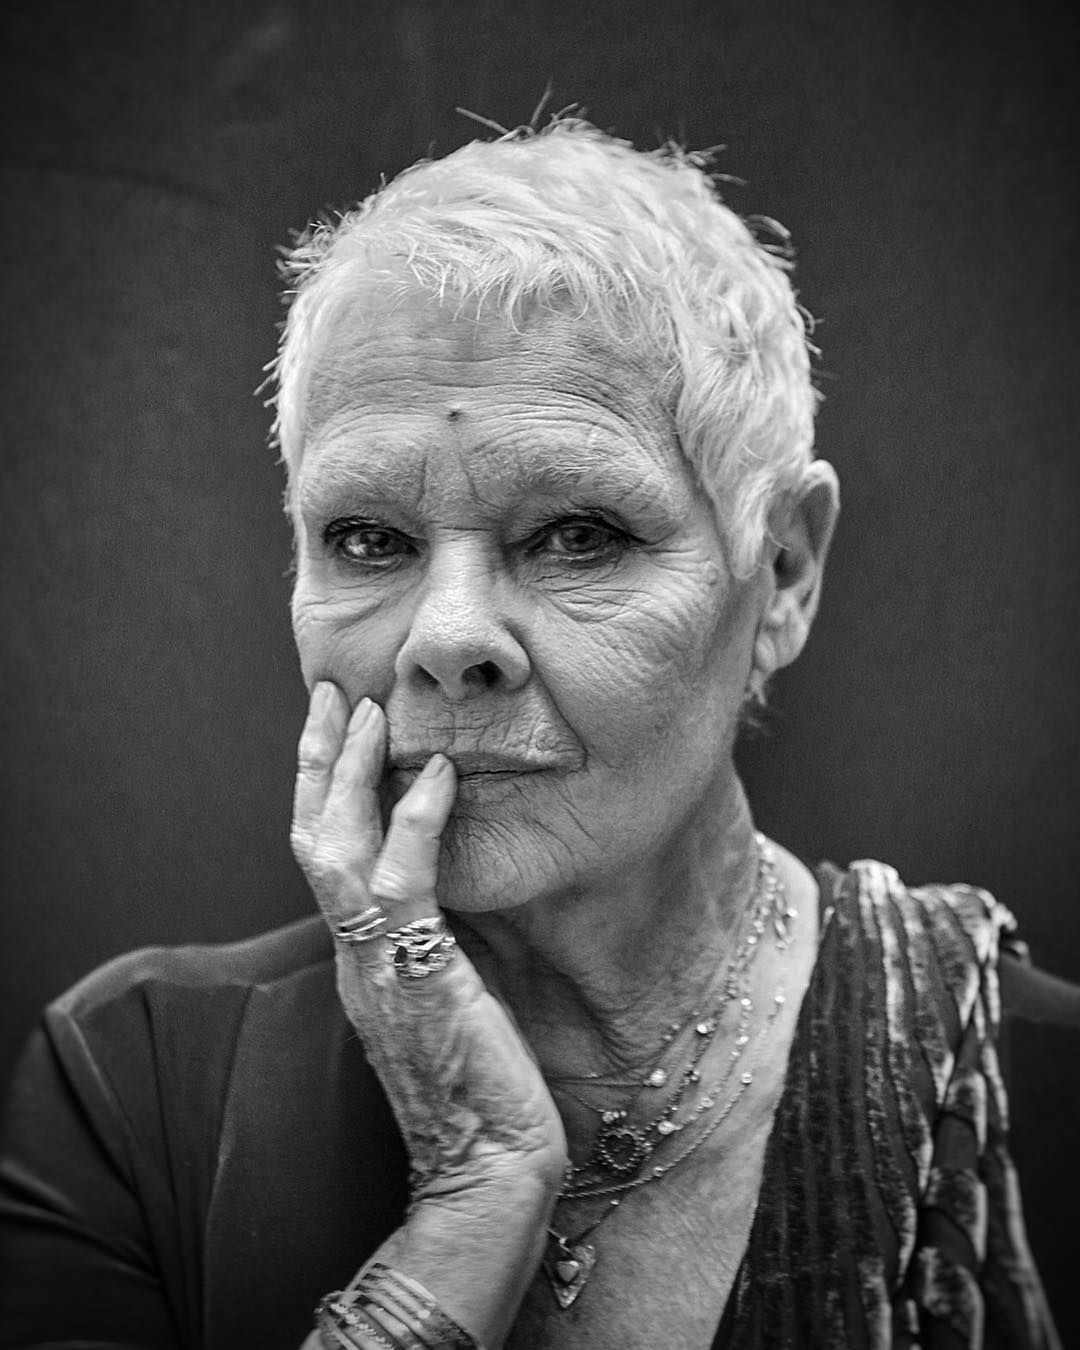 braless Judi Dench (born 1934) naked photo 2017